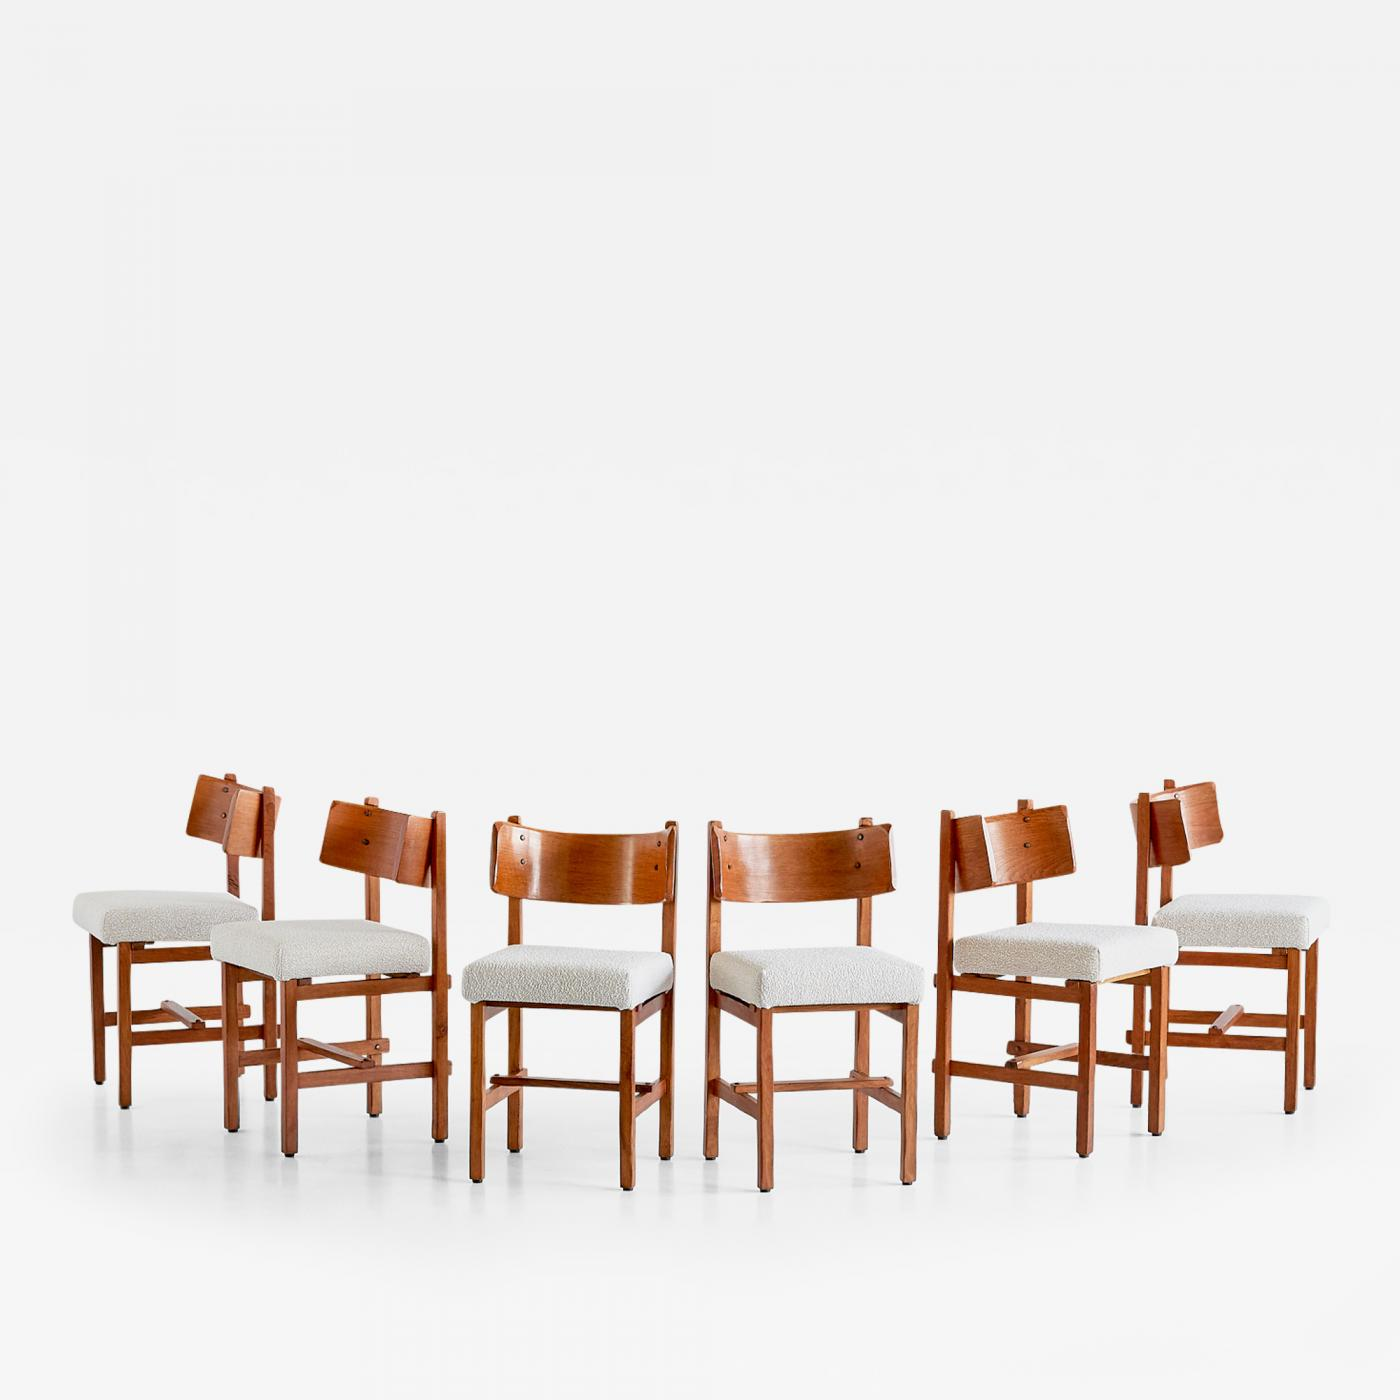 Sensational Simon Packo Set Of Six Oak Dining Chairs By Simon Packo Blankenberge Belgium 1972 Caraccident5 Cool Chair Designs And Ideas Caraccident5Info